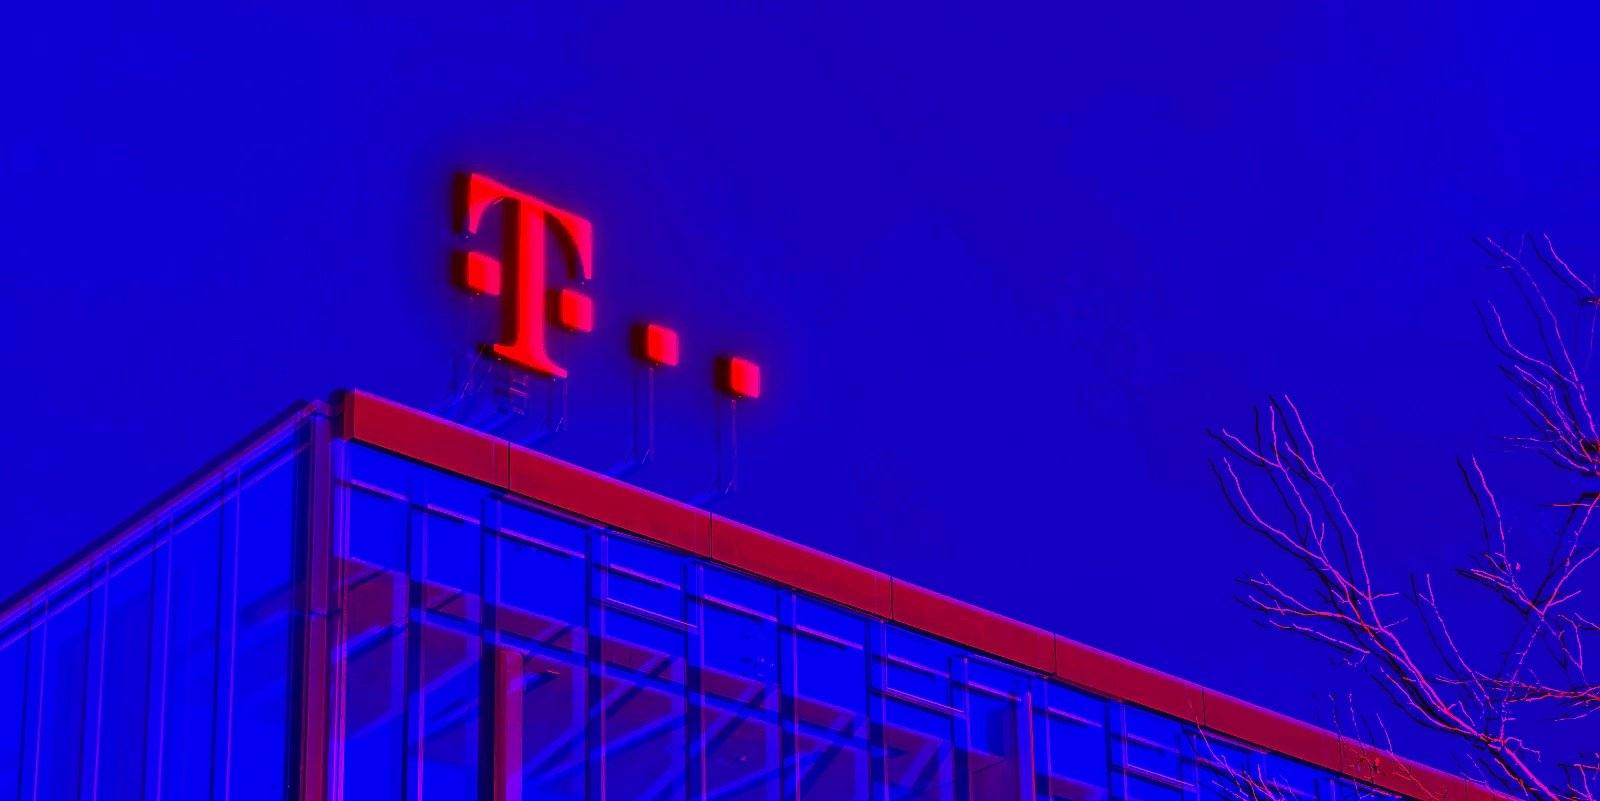 T-Mobile says hackers stole personal info of 8.6 million customers